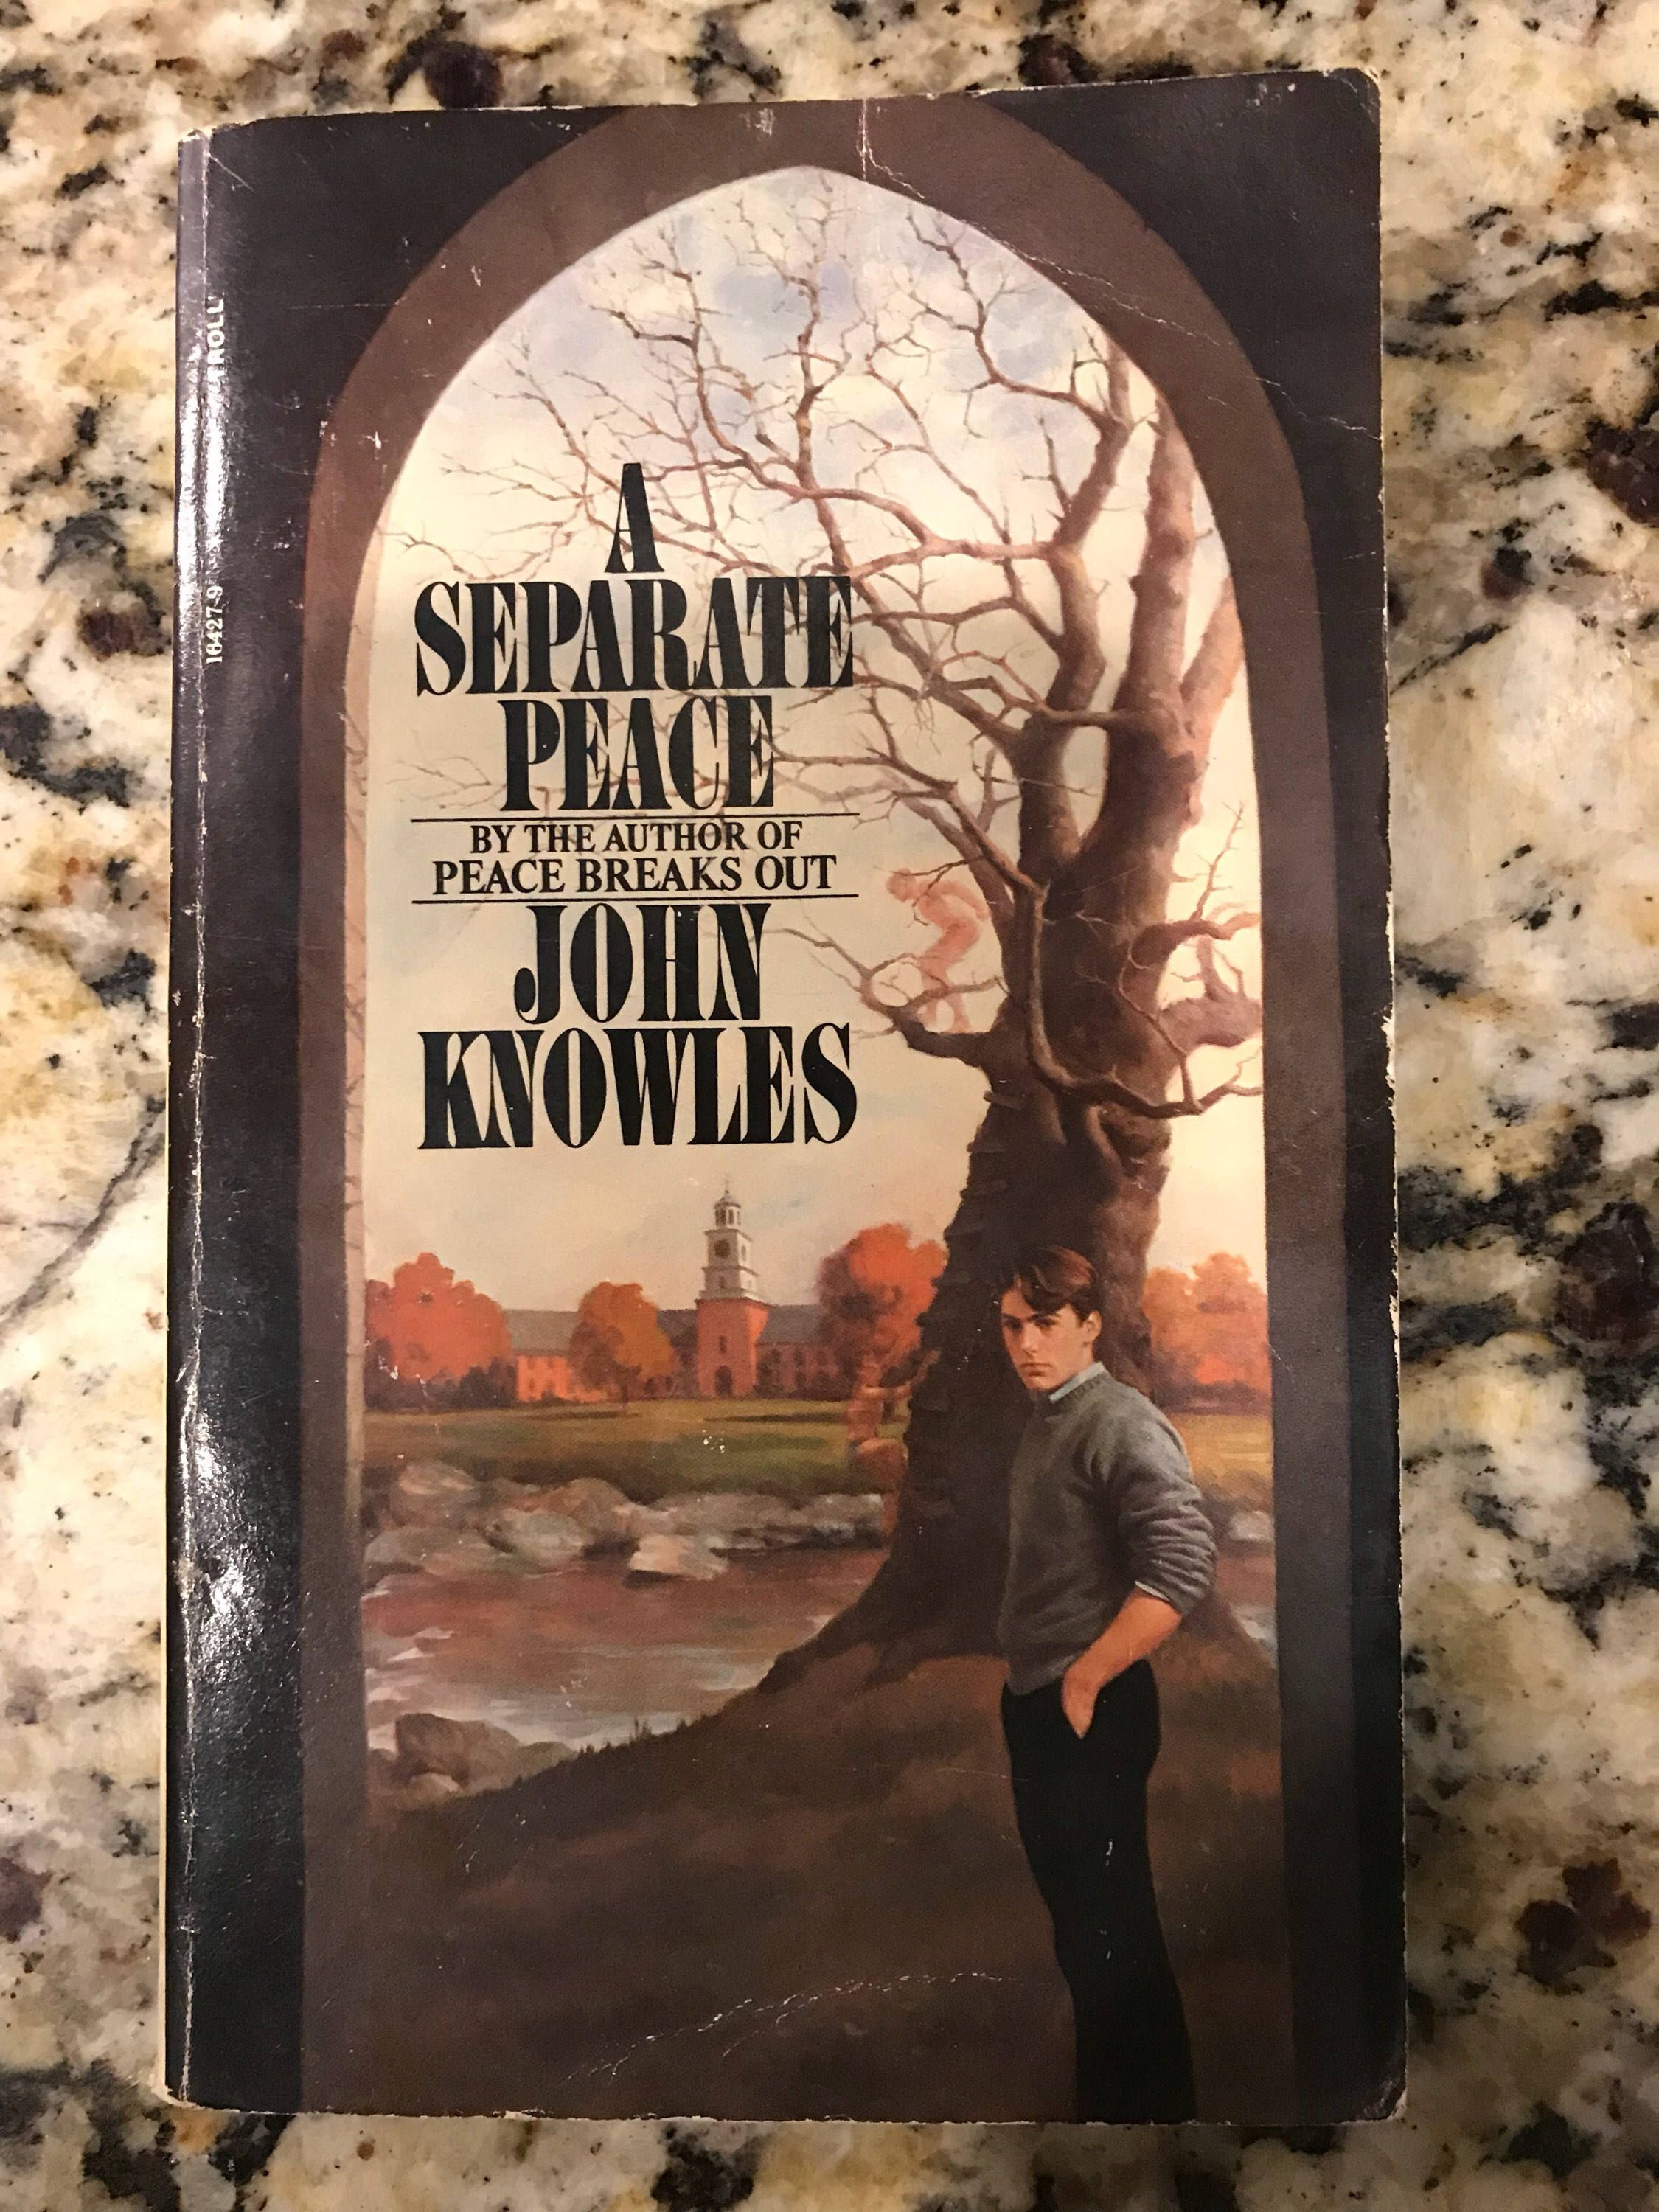 an analysis of inner peace in a separate peace by john knowles In the book a separate peace, by john knowles, there are many interesting characters and different personalities of each character meet john doe film analysis - john doe played by gary cooper a separate peace - gene and phineas's relationship essay.